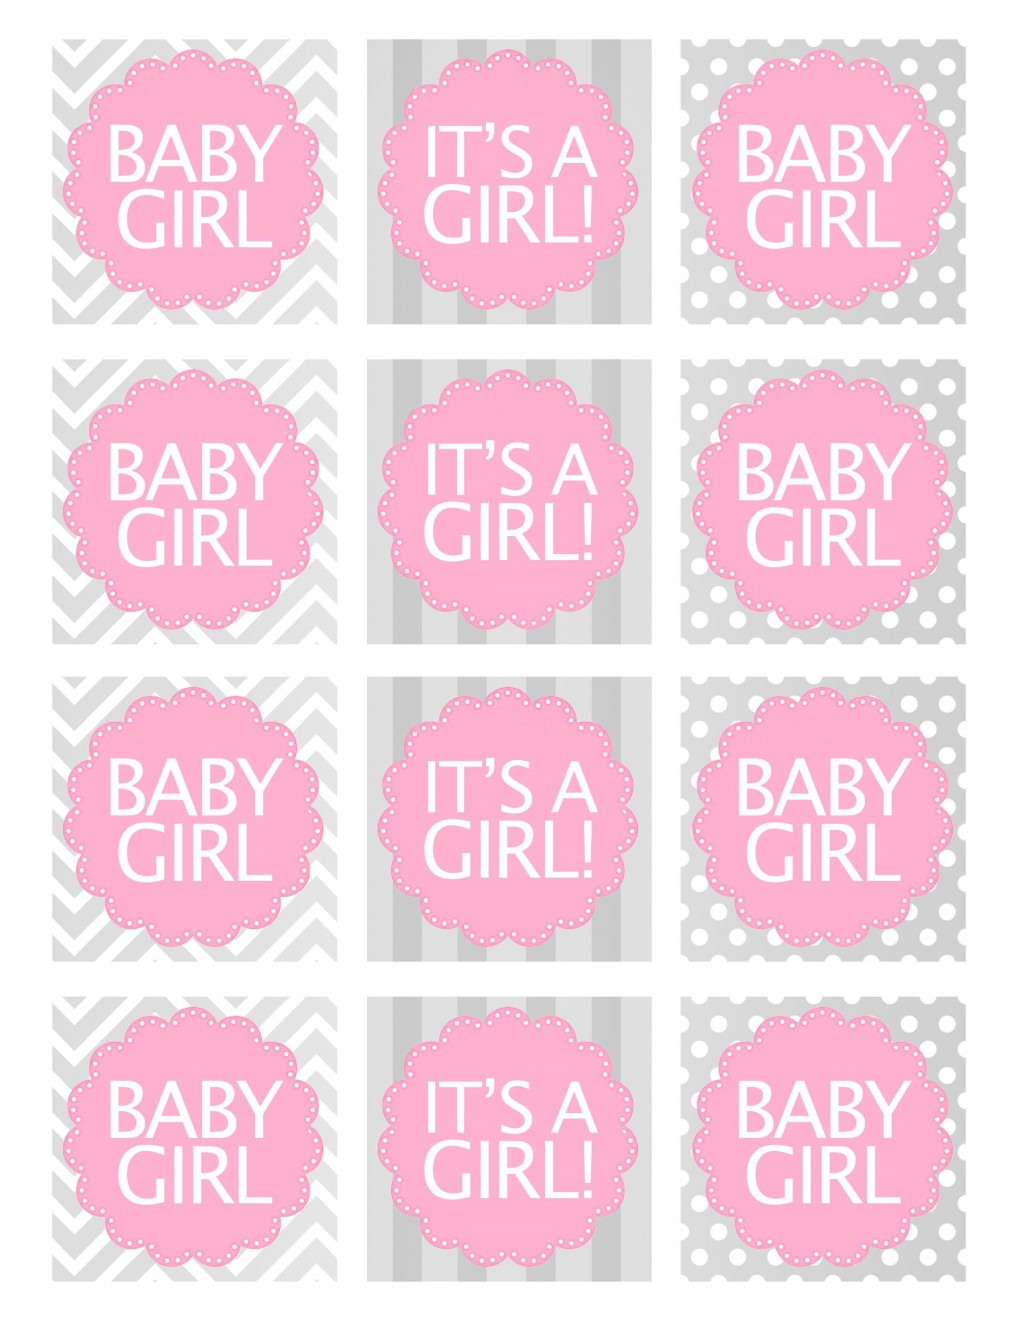 000 Remarkable Baby Shower Printable Girl High Def  Sheet Cake Cute For ALarge